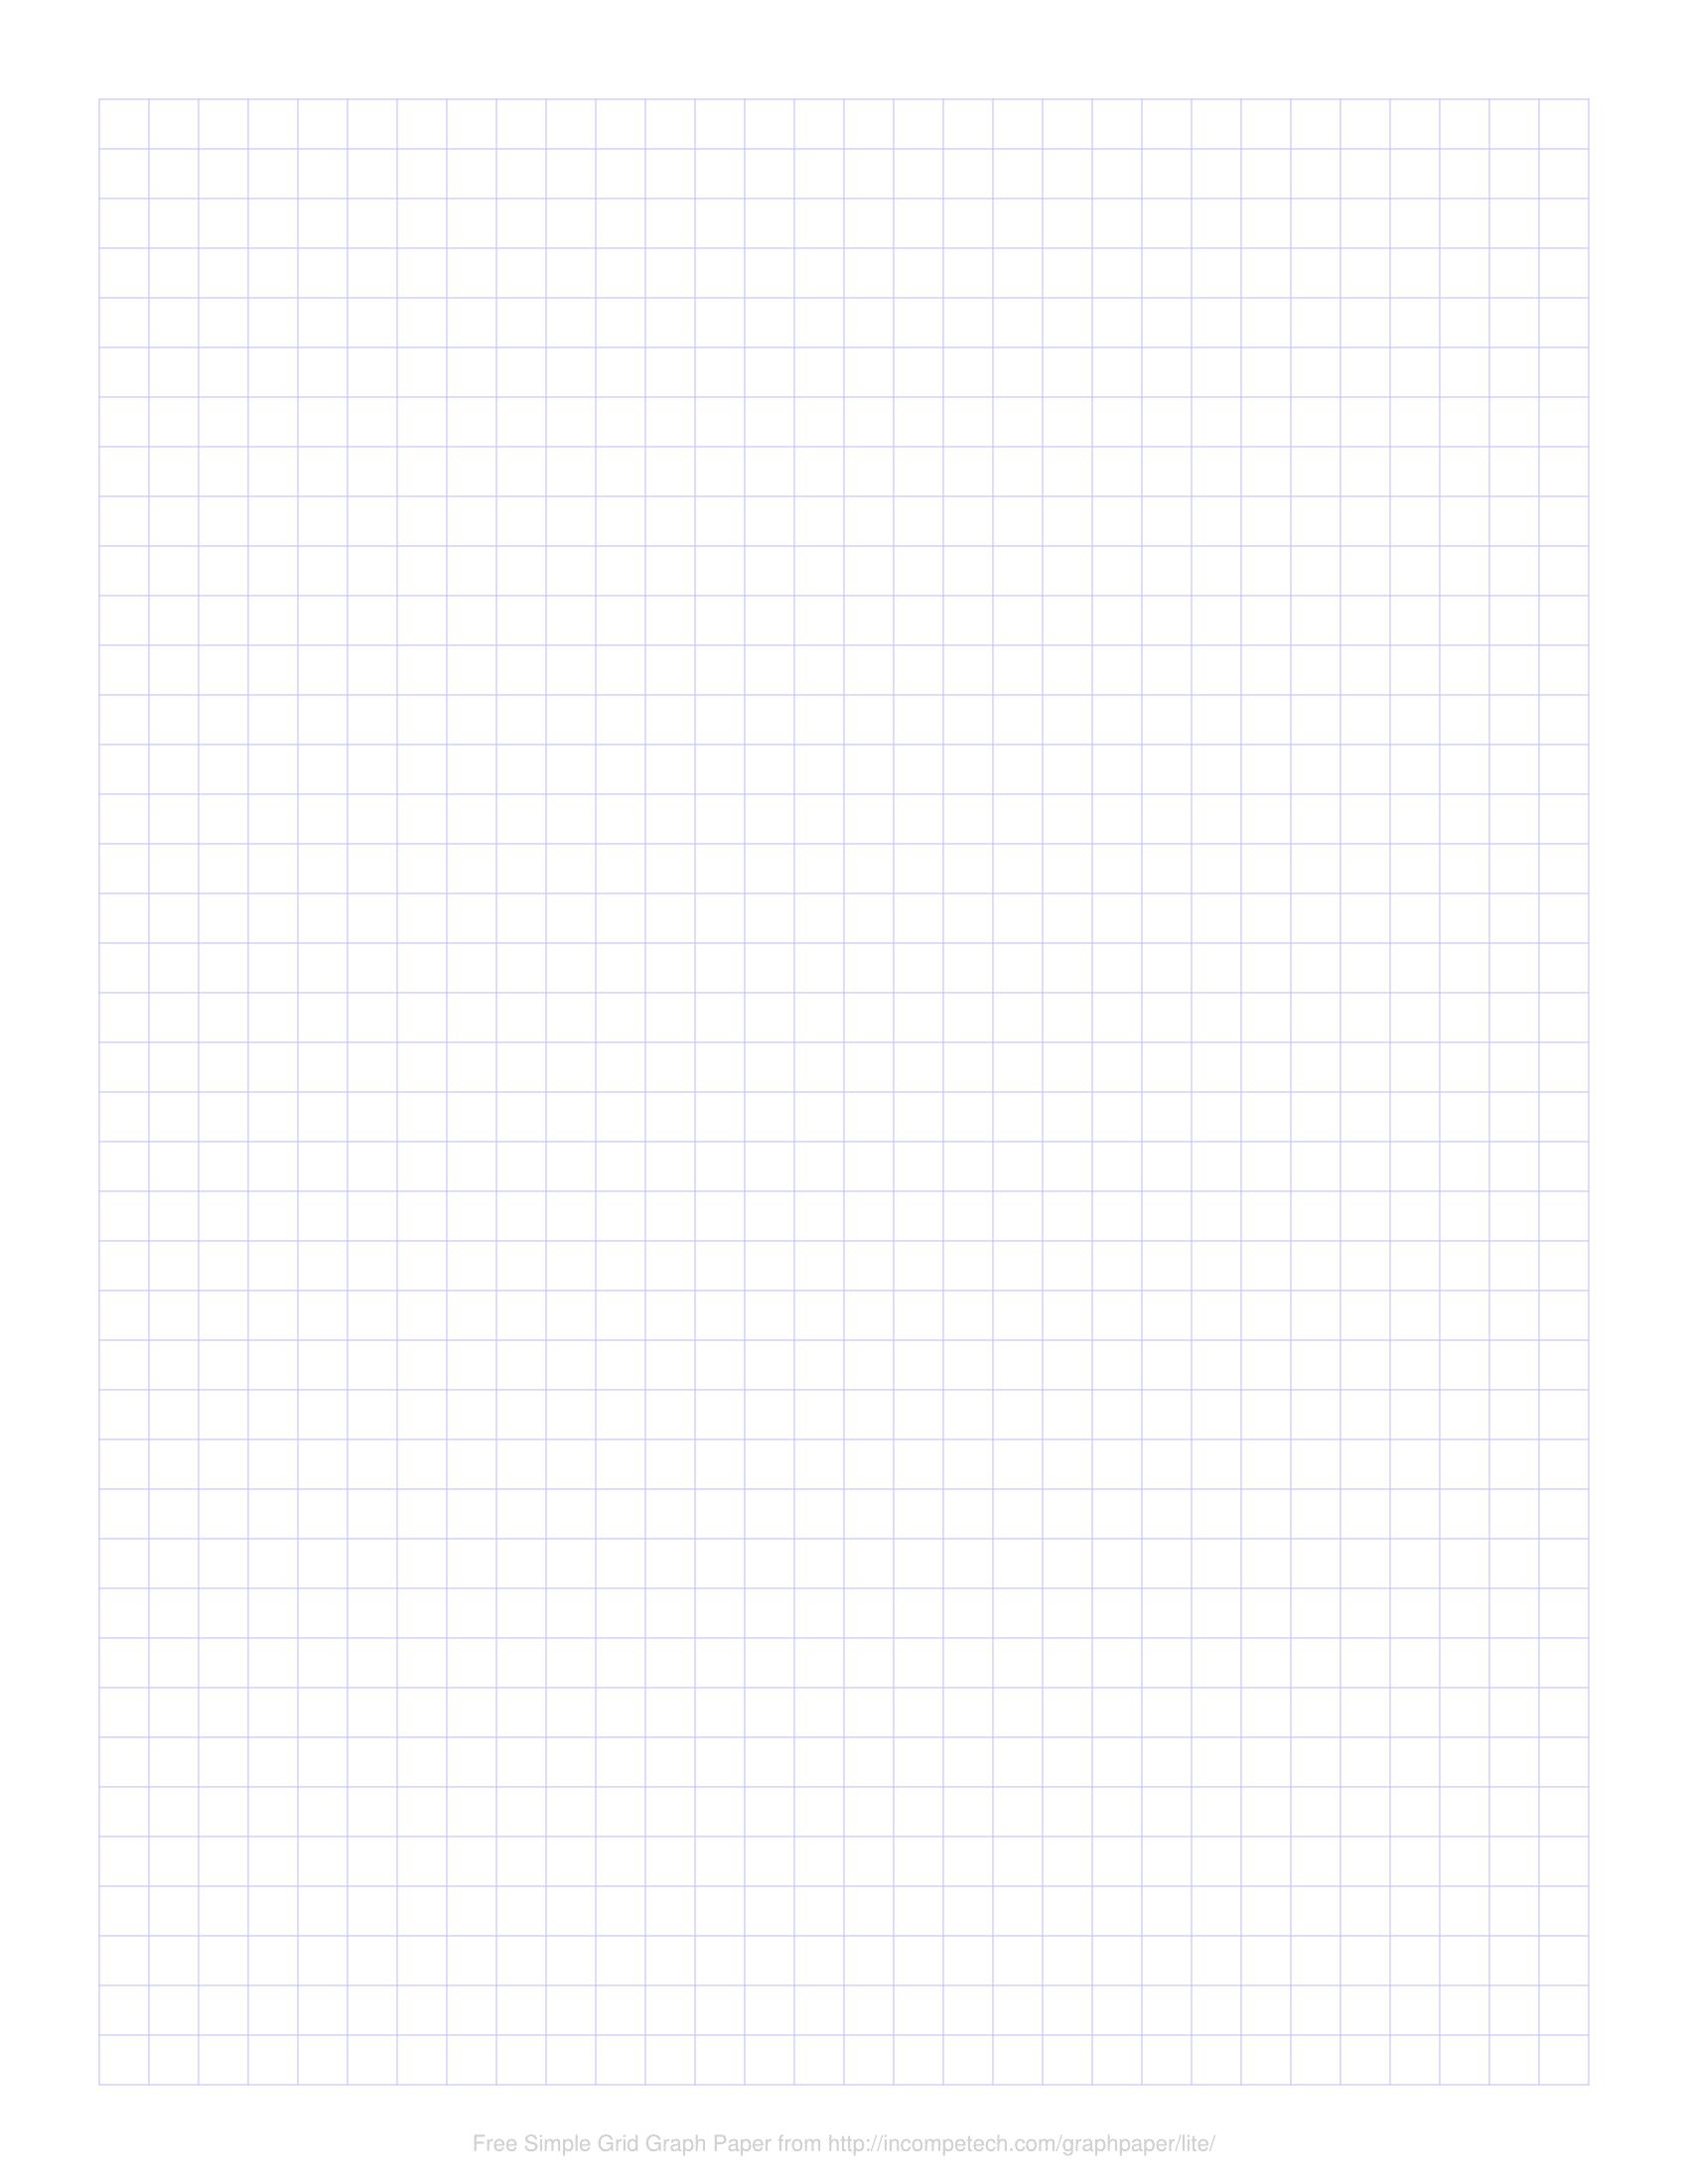 free online graph paper simple grid